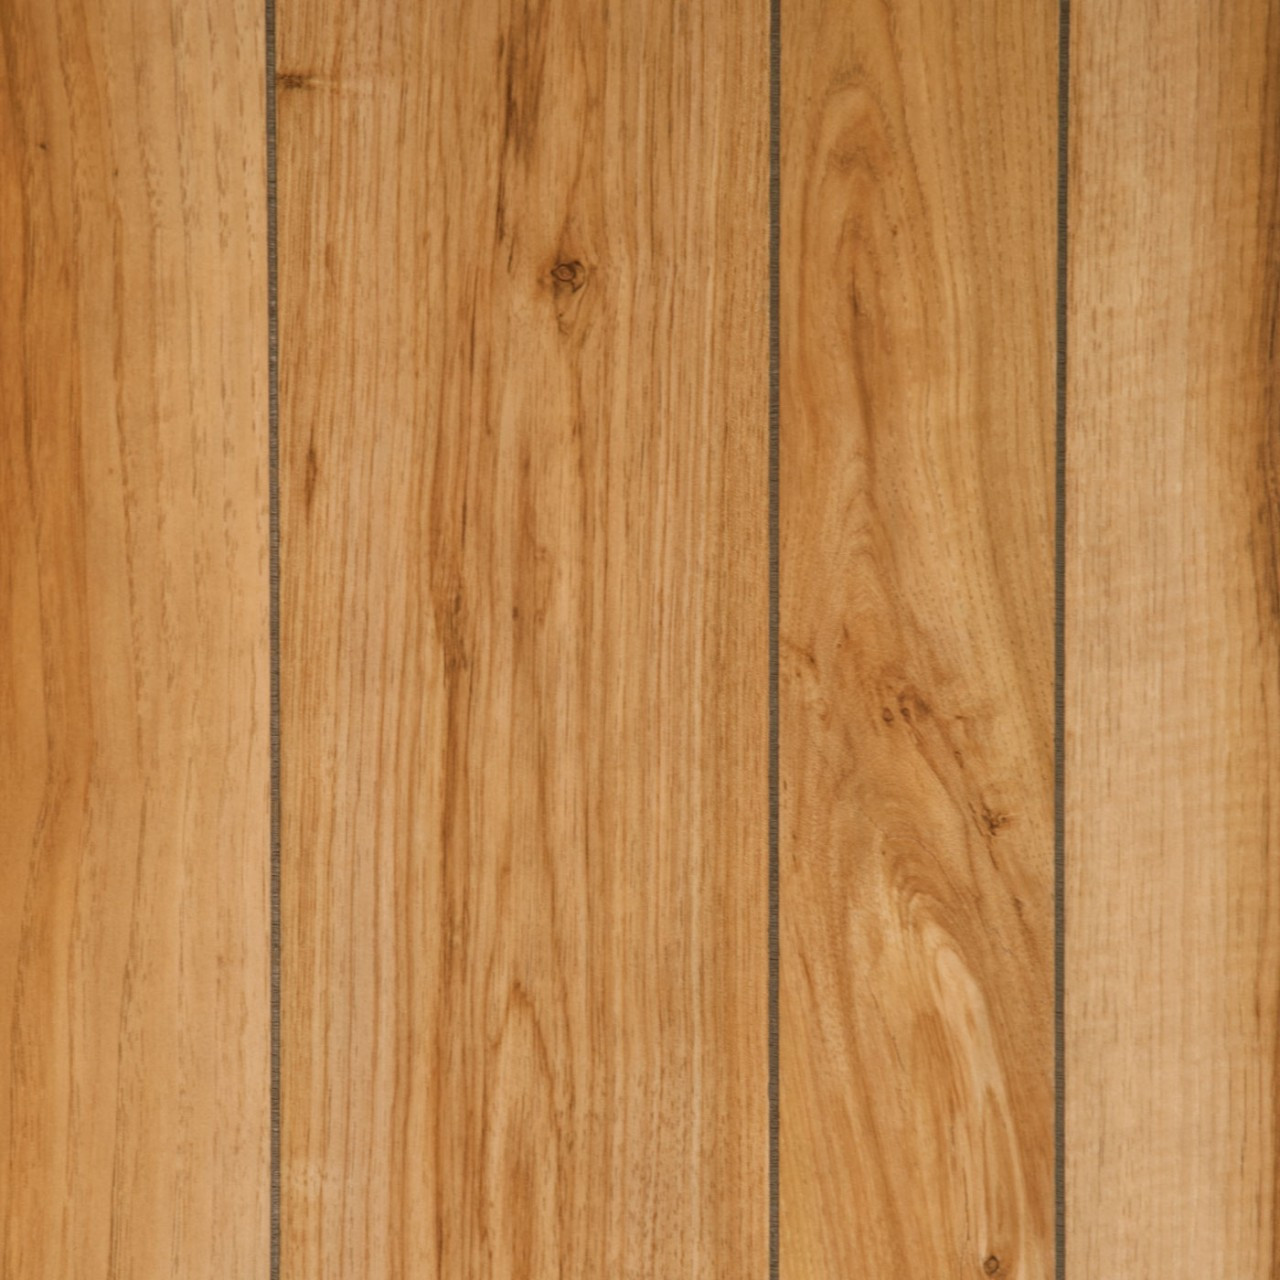 Wood paneling 4x8 sheet car interior design knotty pine for Knotty laminate flooring